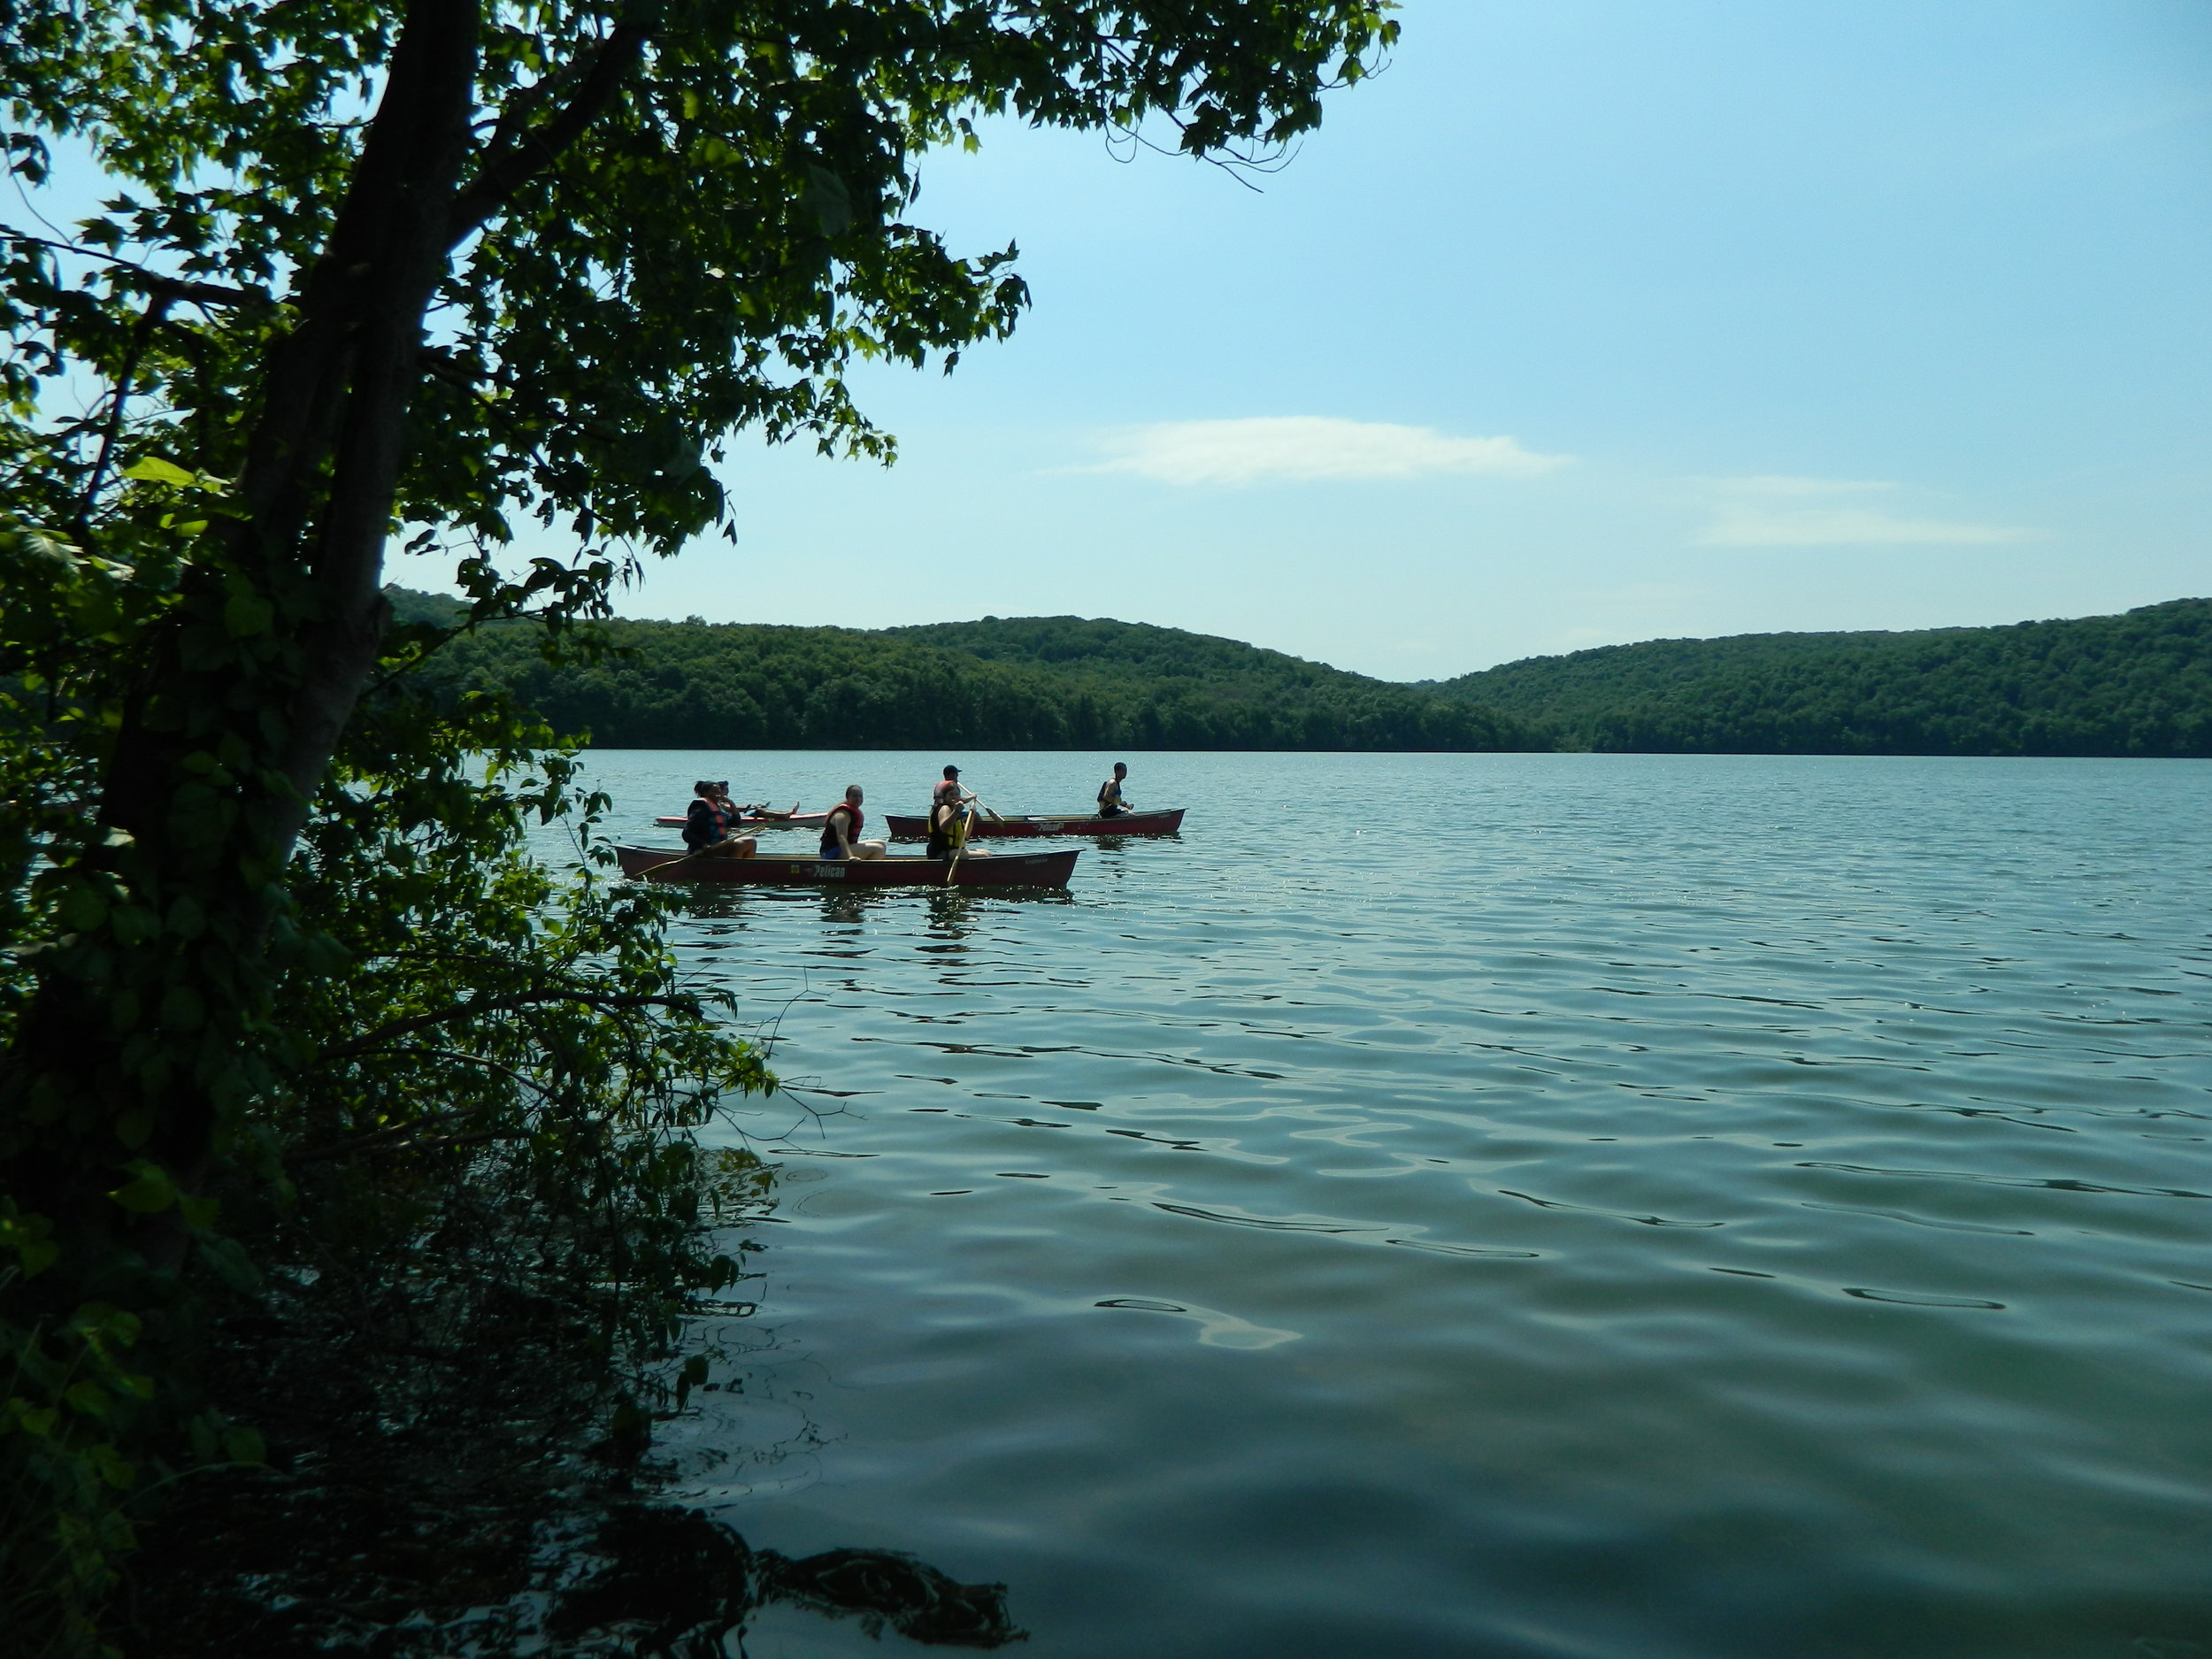 Canoeing at the Quemahoning